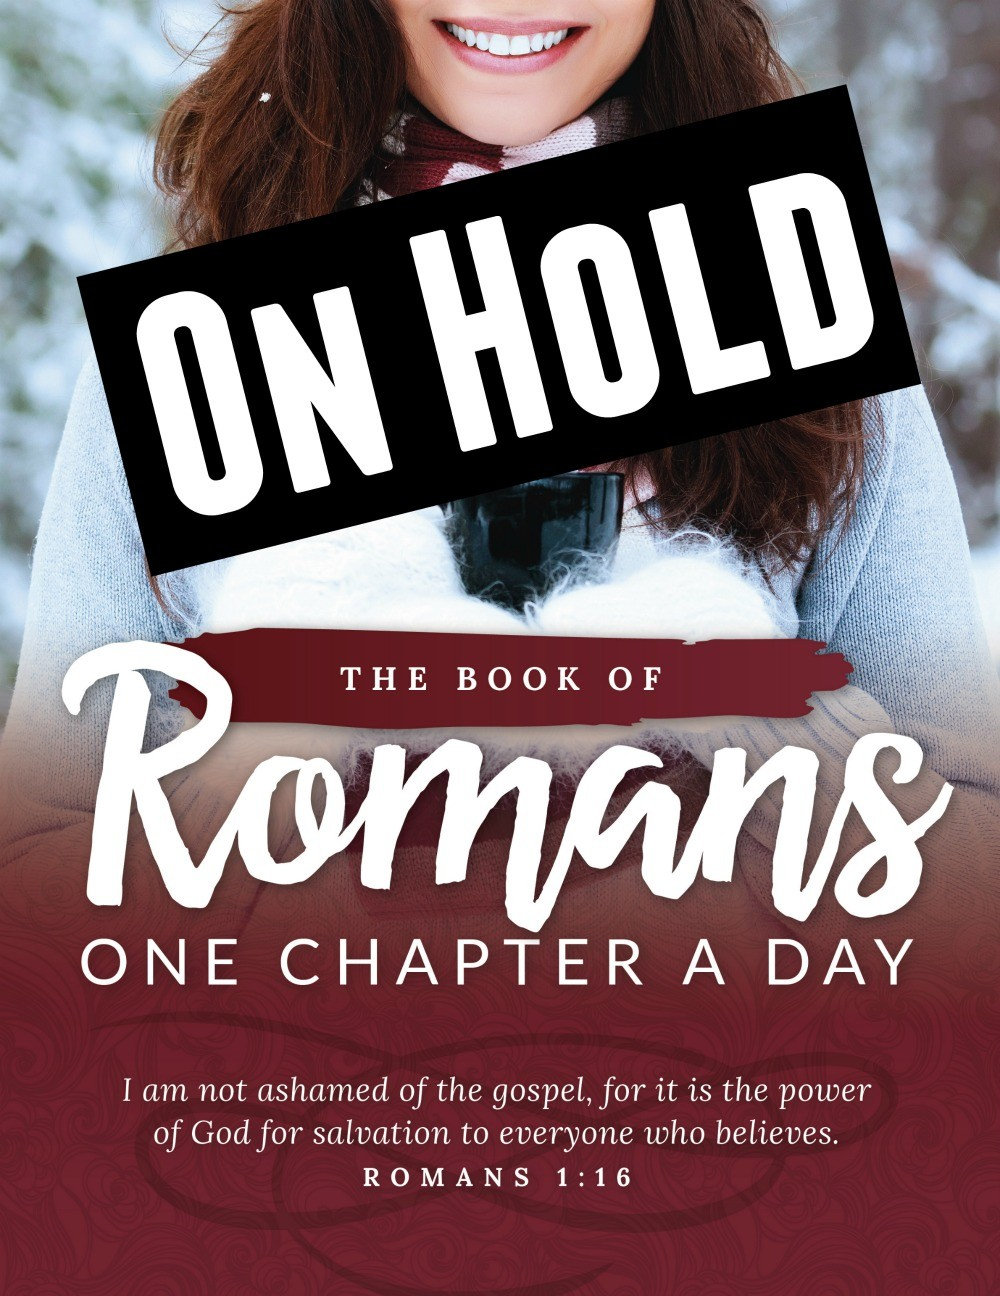 the-book-of-romans-on-hold